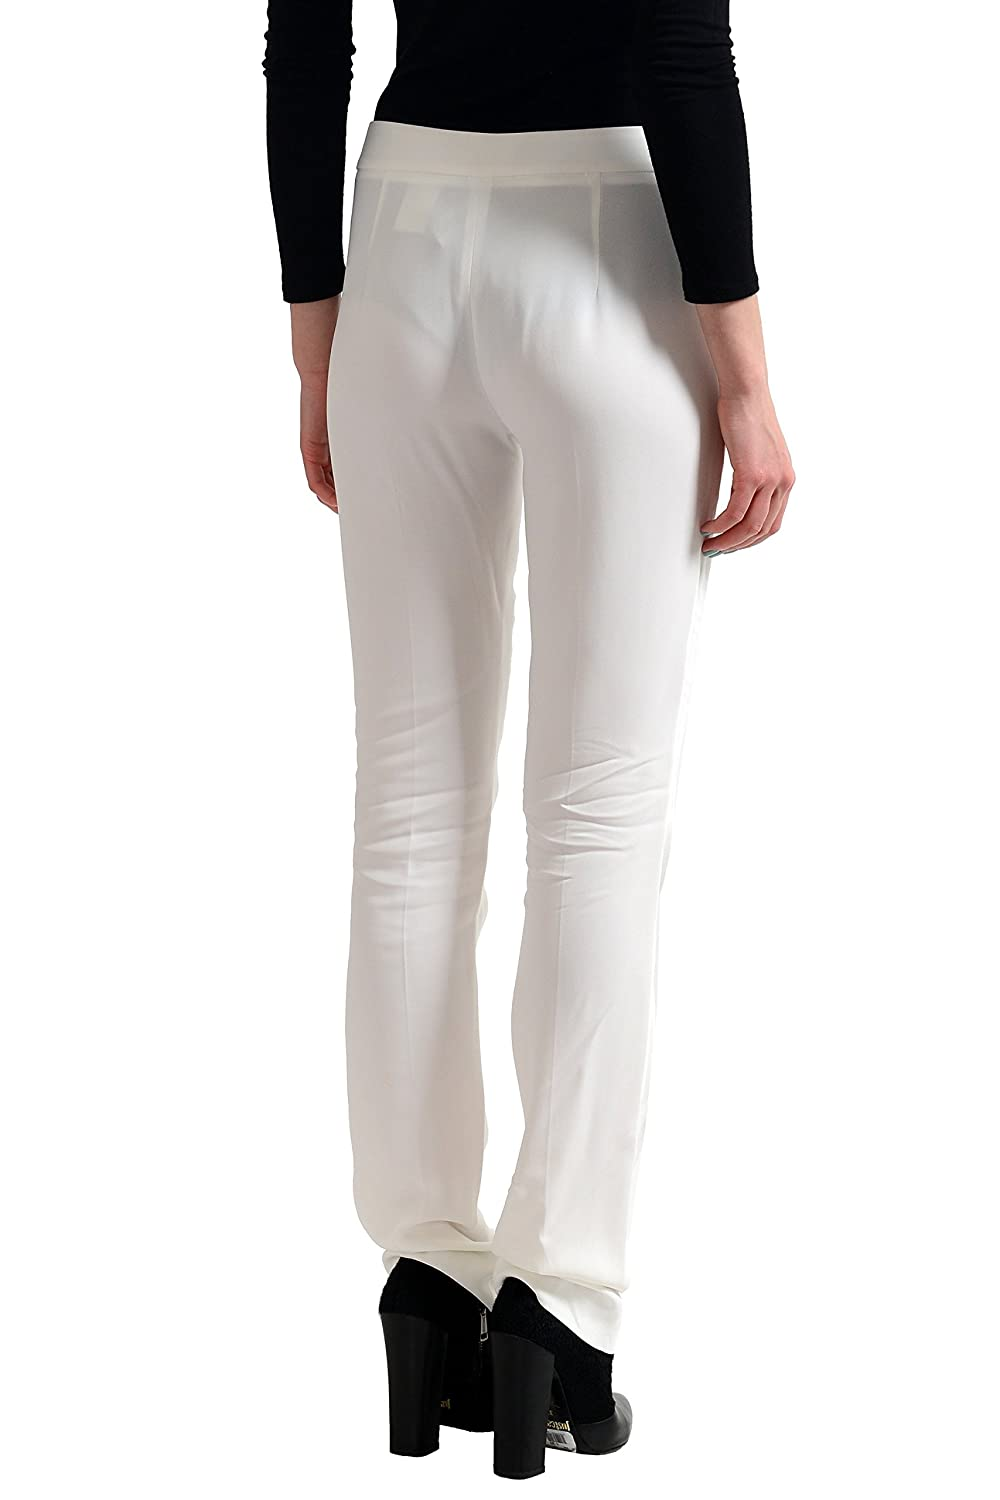 Just Cavalli Women's White Flat Front Casual Pants US 4 IT 40